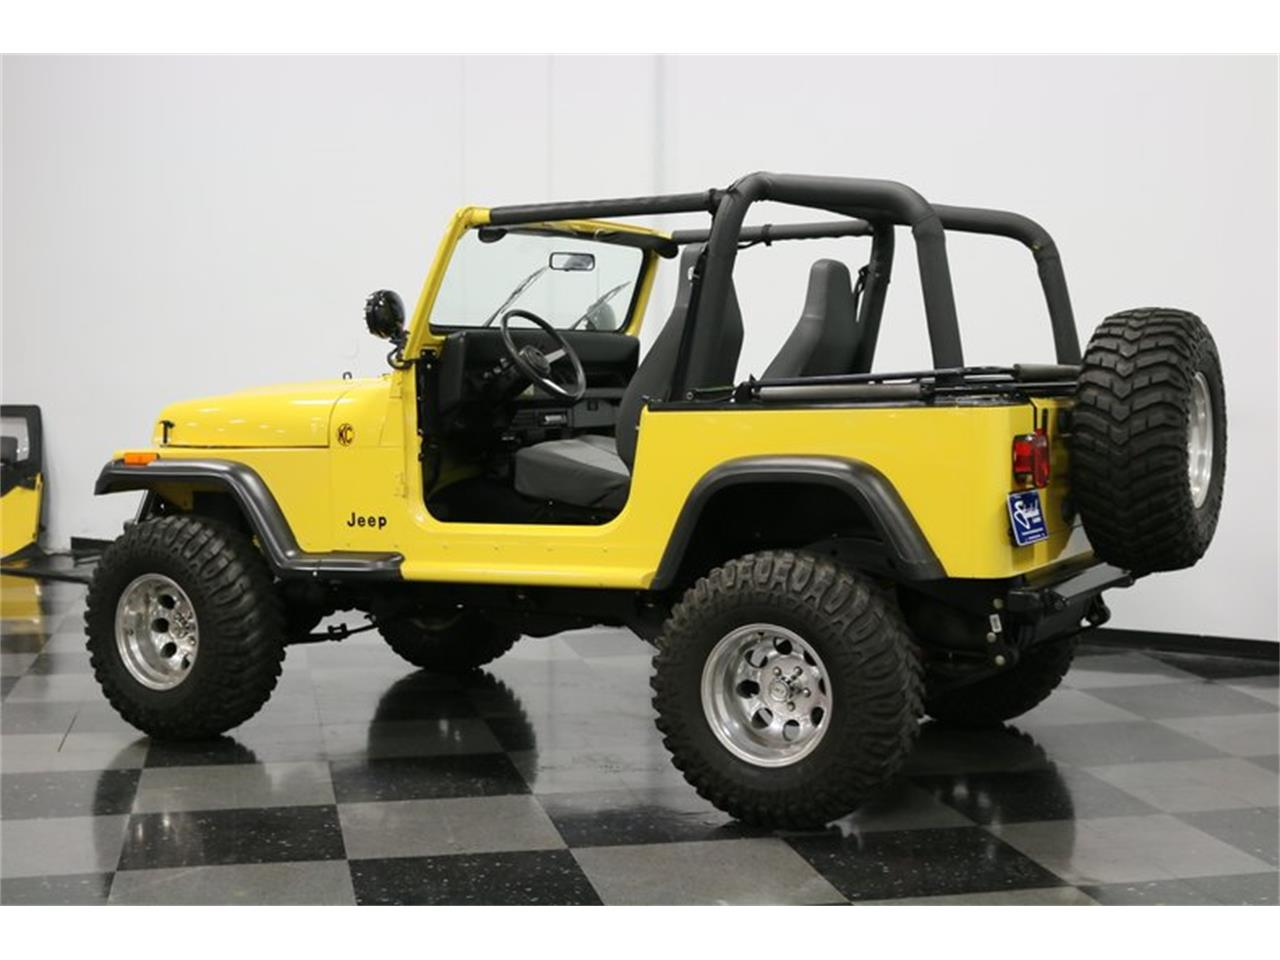 Large Picture of '93 Wrangler located in Texas - $25,995.00 Offered by Streetside Classics - Dallas / Fort Worth - P701